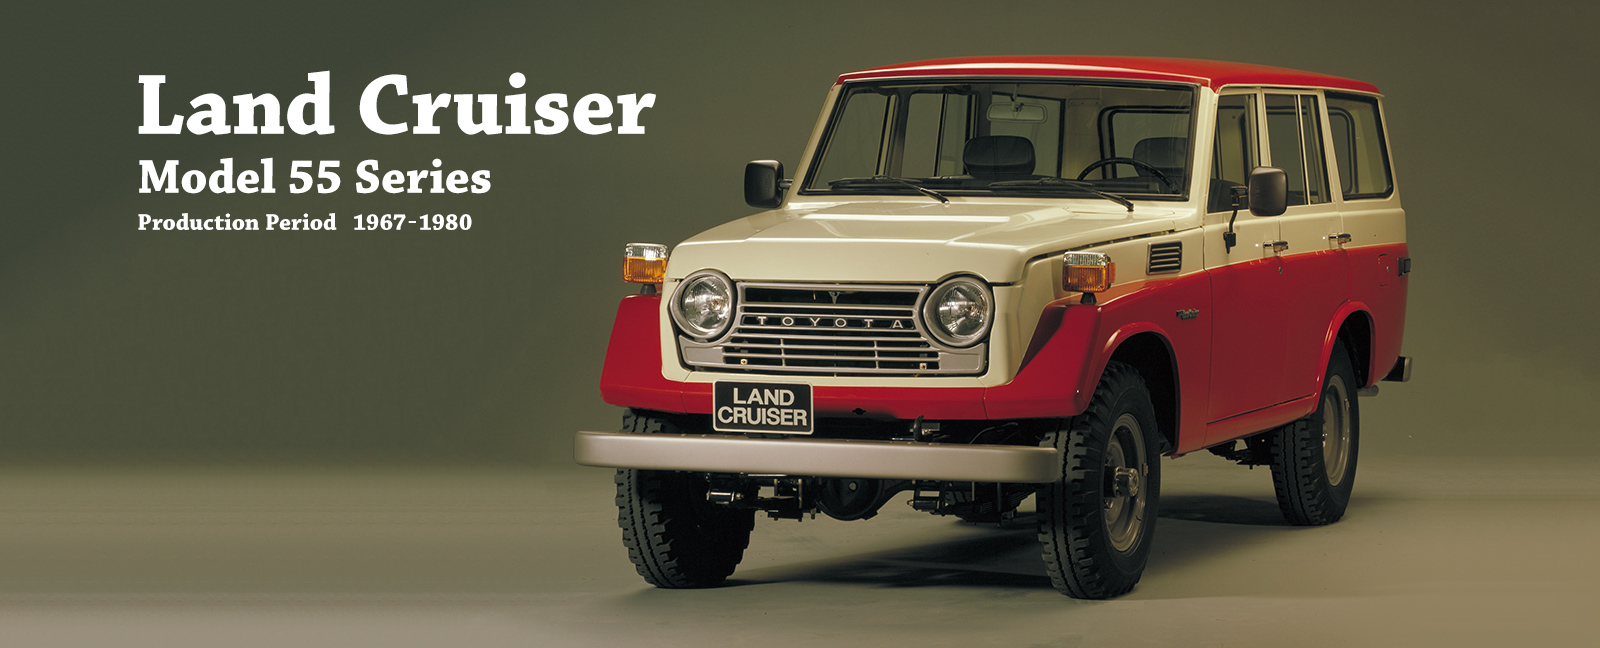 Vehicle heritage land cruiser model 55 series